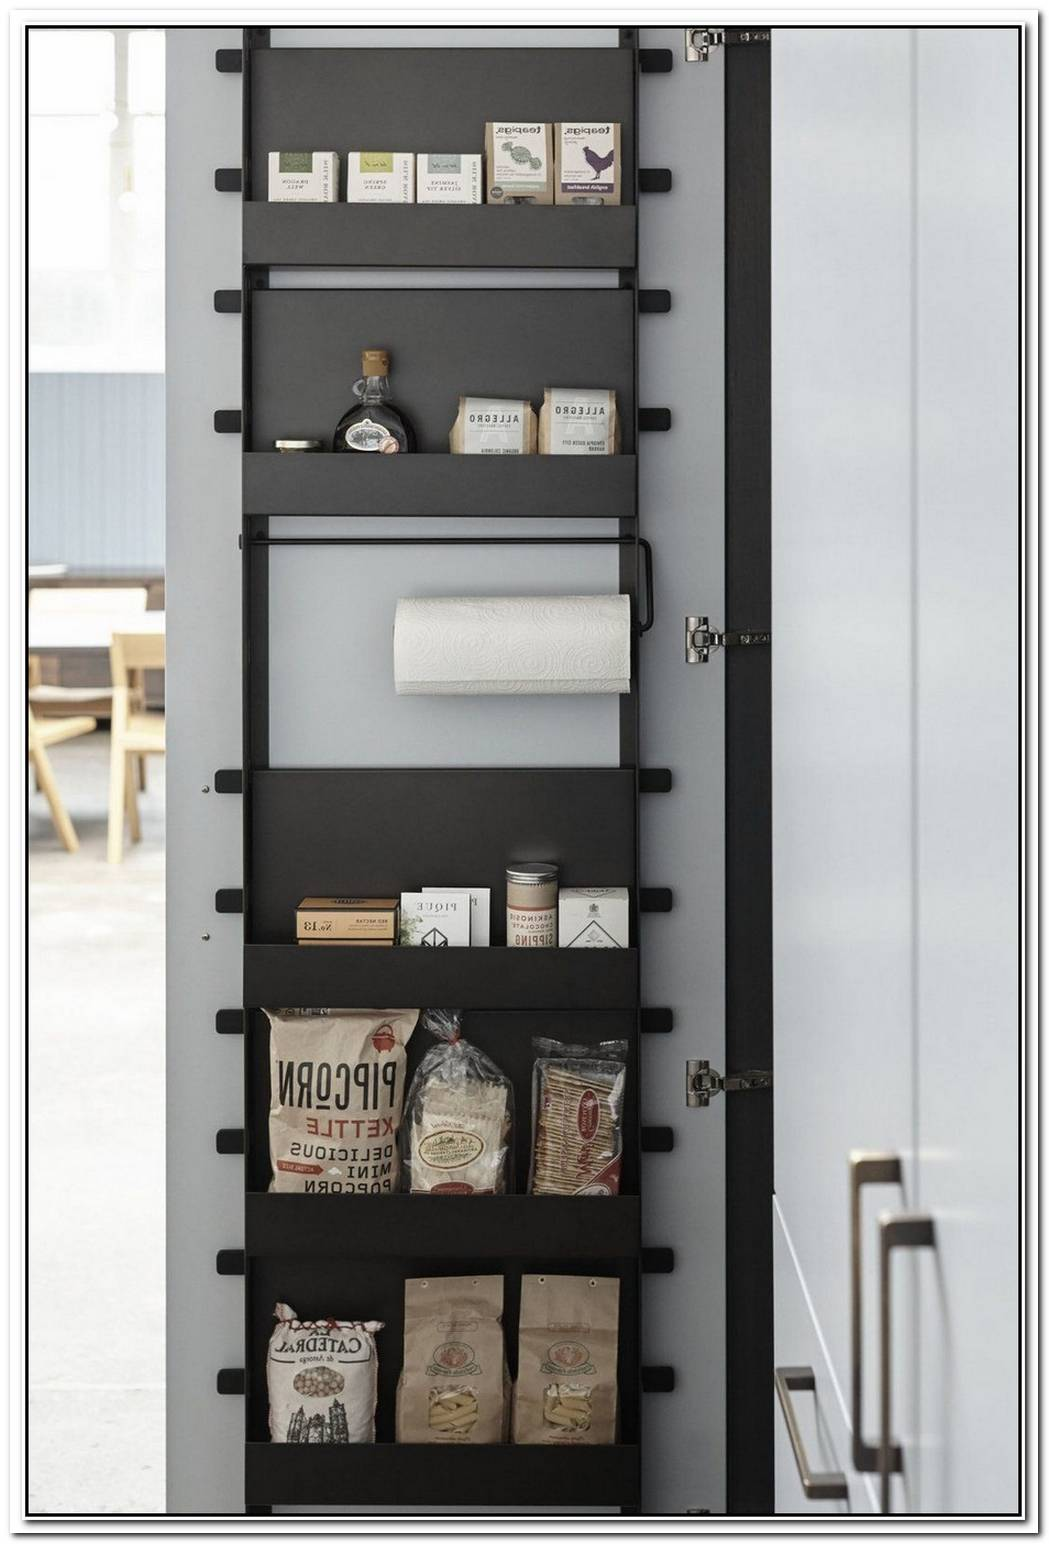 Classy Designs Illustrate The Versatility Of Storage Cabinets